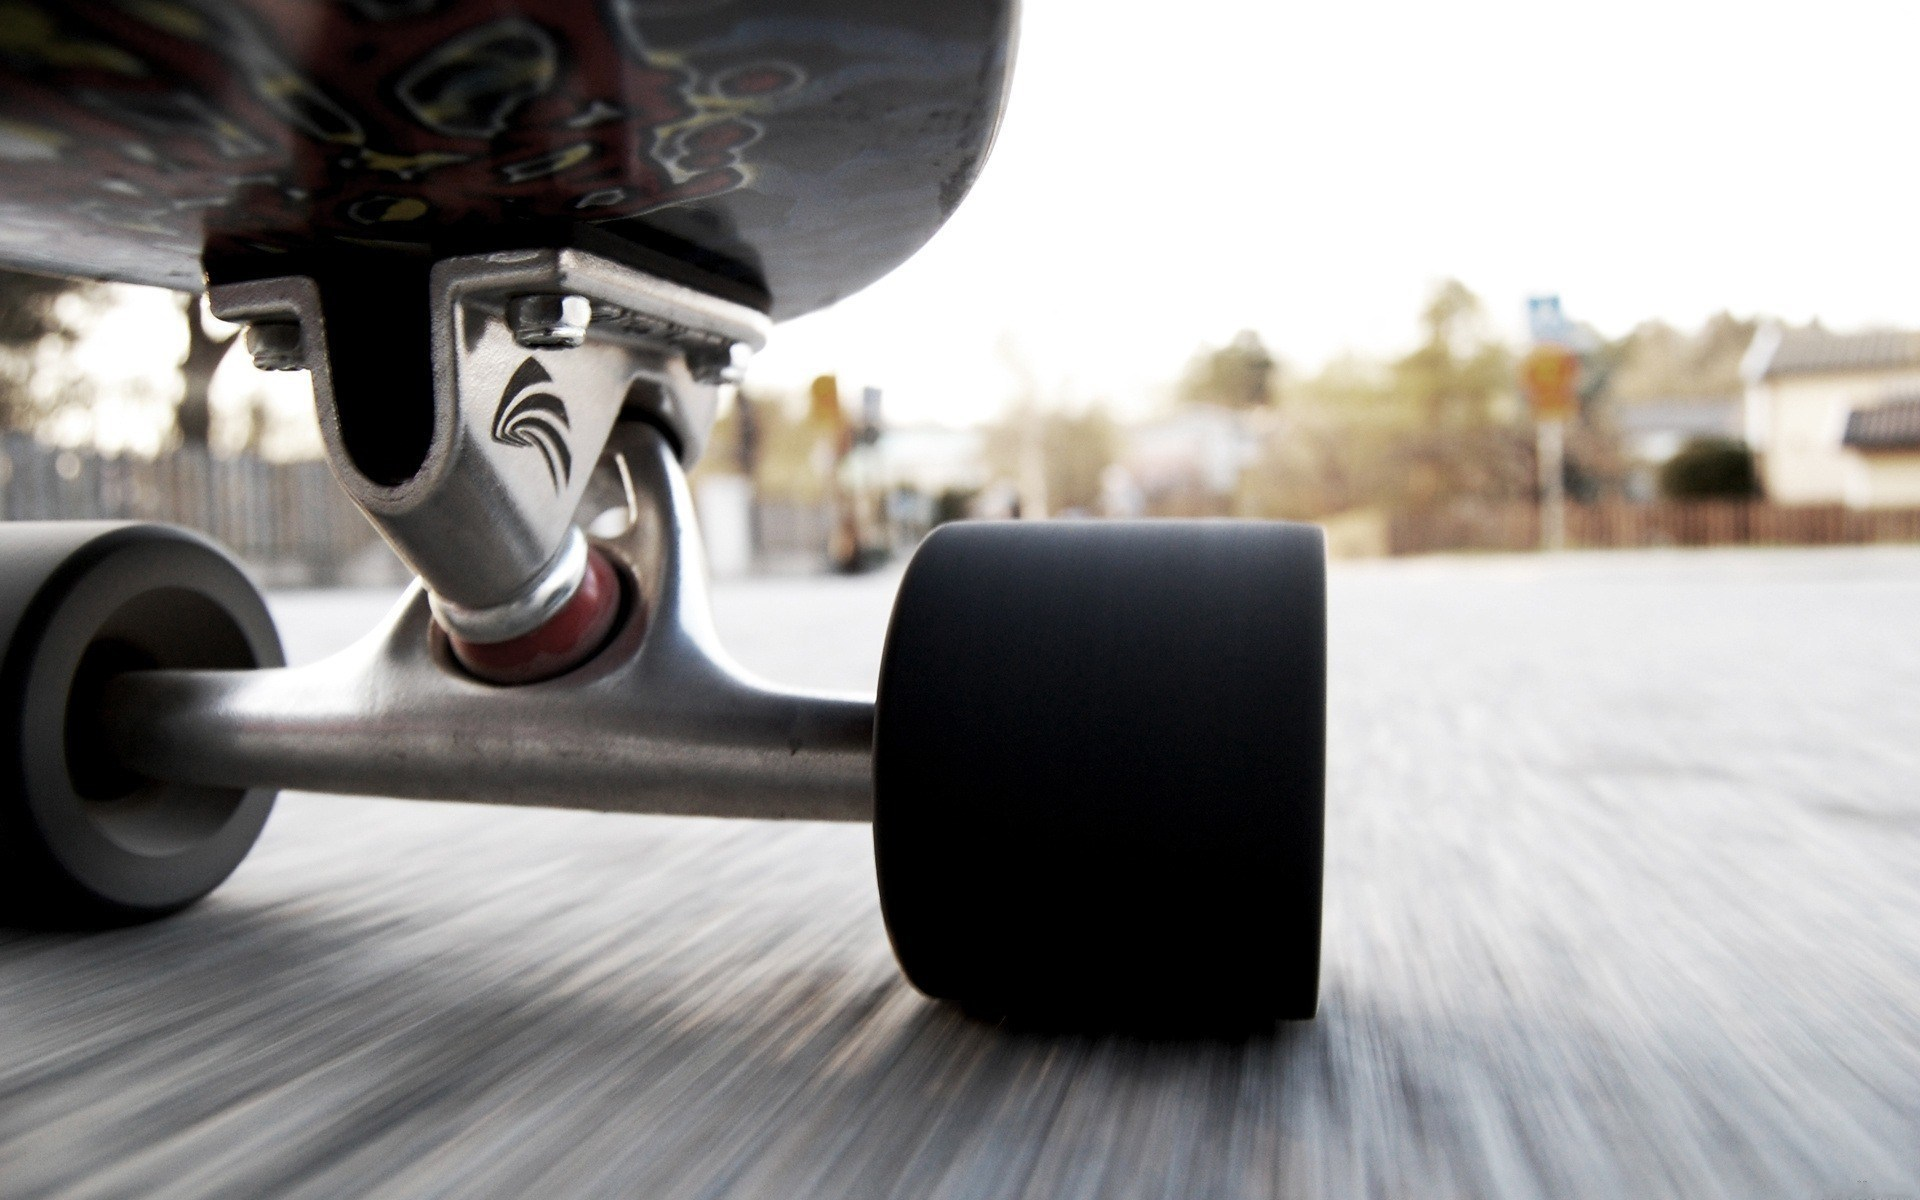 skateboard-wheels-street-hd-wallpaper